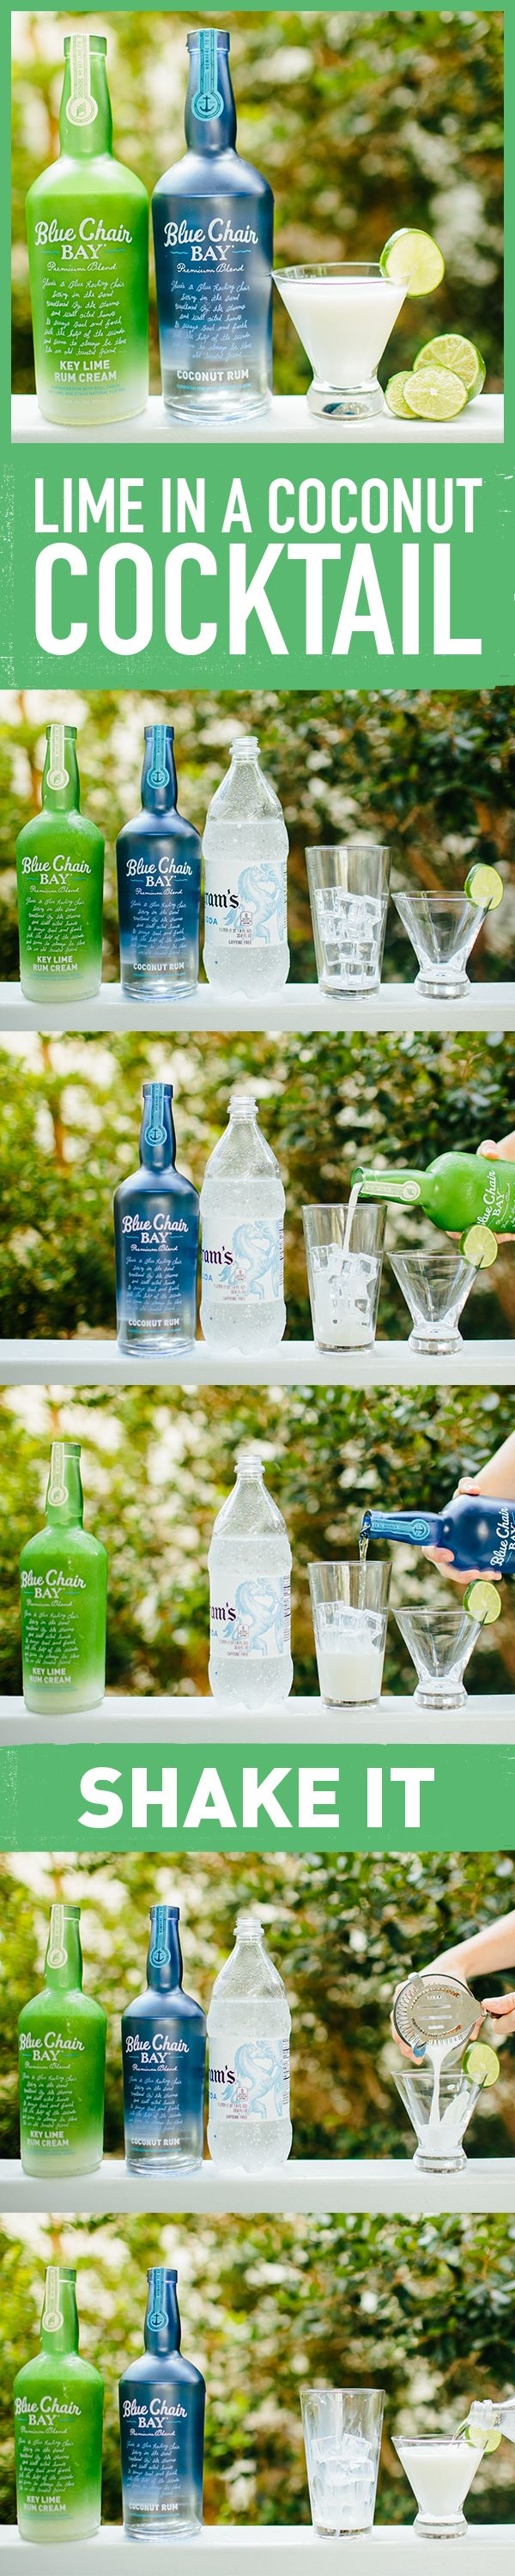 LIME IN A COCONUT COCKTAIL // 3 oz. Blue Chair Bay Key Lime Rum Cream + 1 oz. Blue Chair Bay Coconut Rum + 1 oz. club soda // Shake both rums together and double strain into martini glass. Top with club soda.